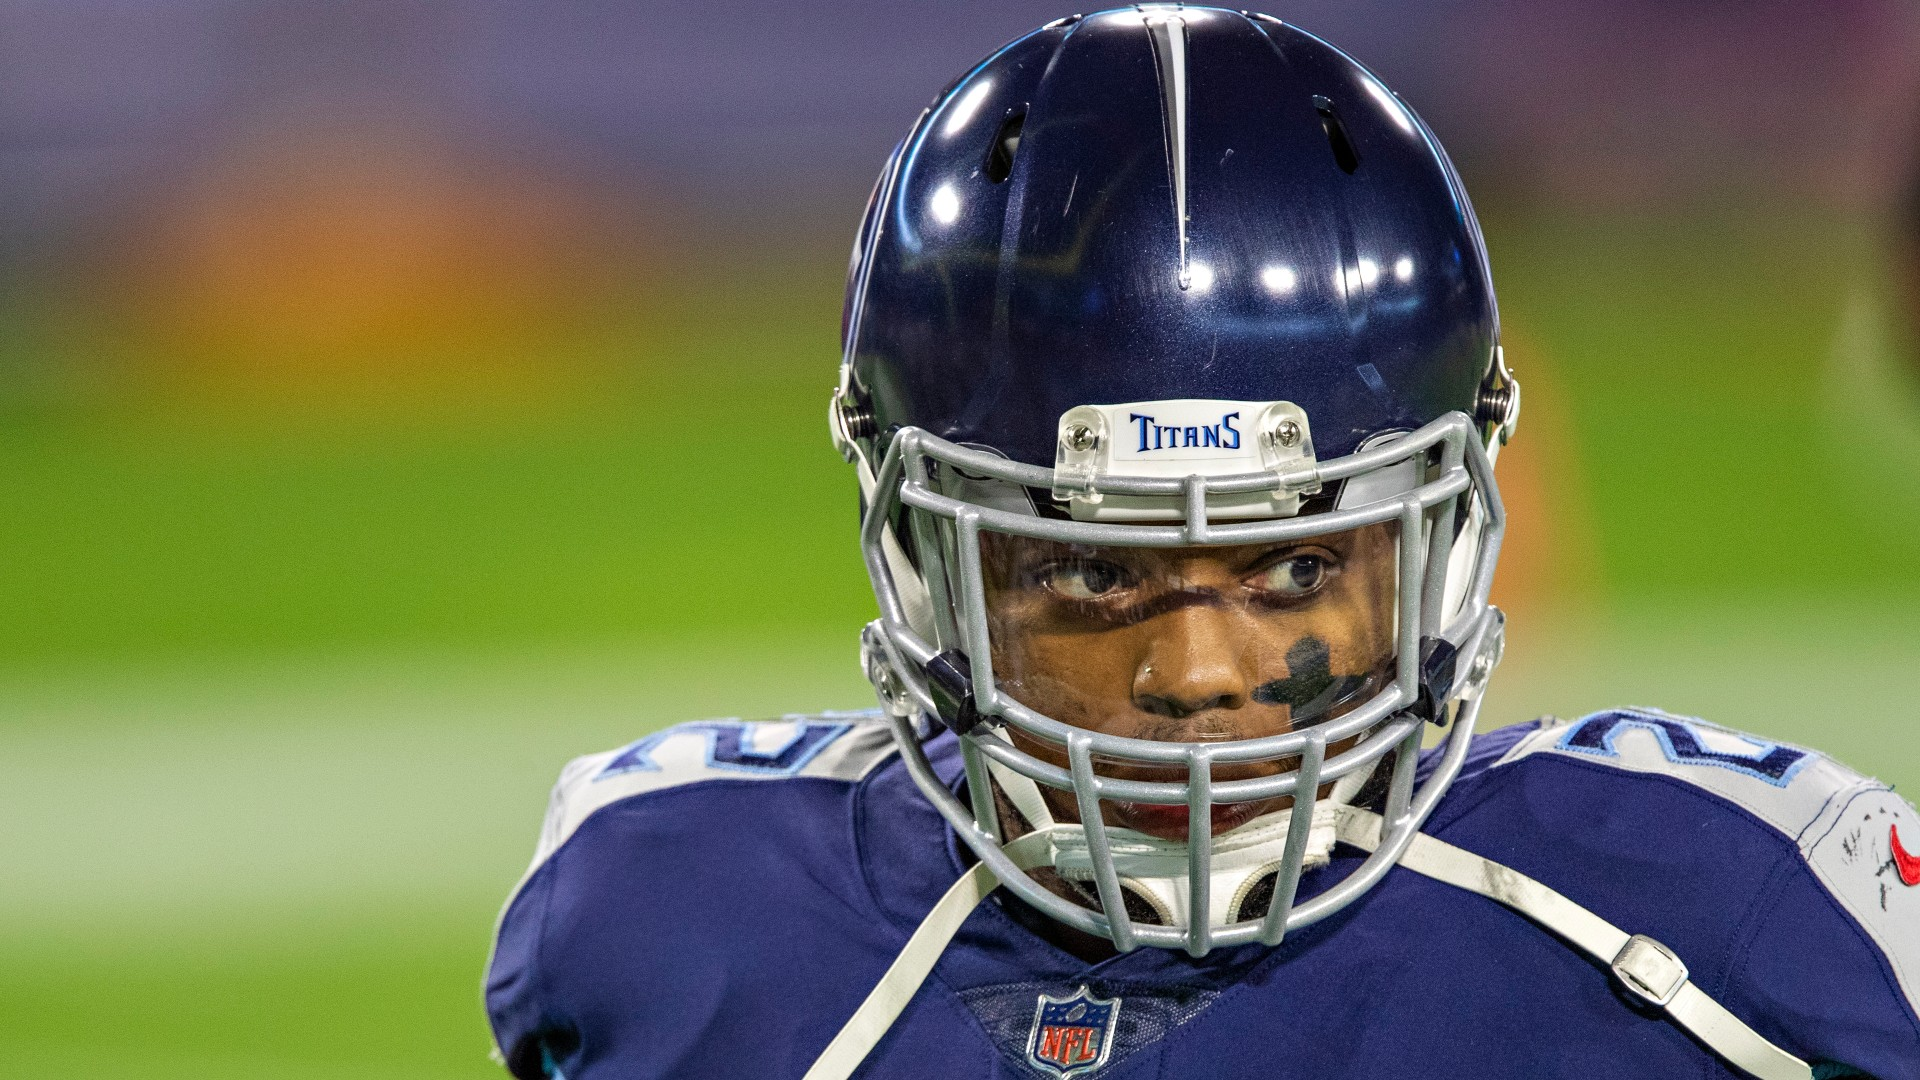 Freedman's NFL Week 11 Trends & Early Bets: Value on Titans on the Road Against Ravens article feature image